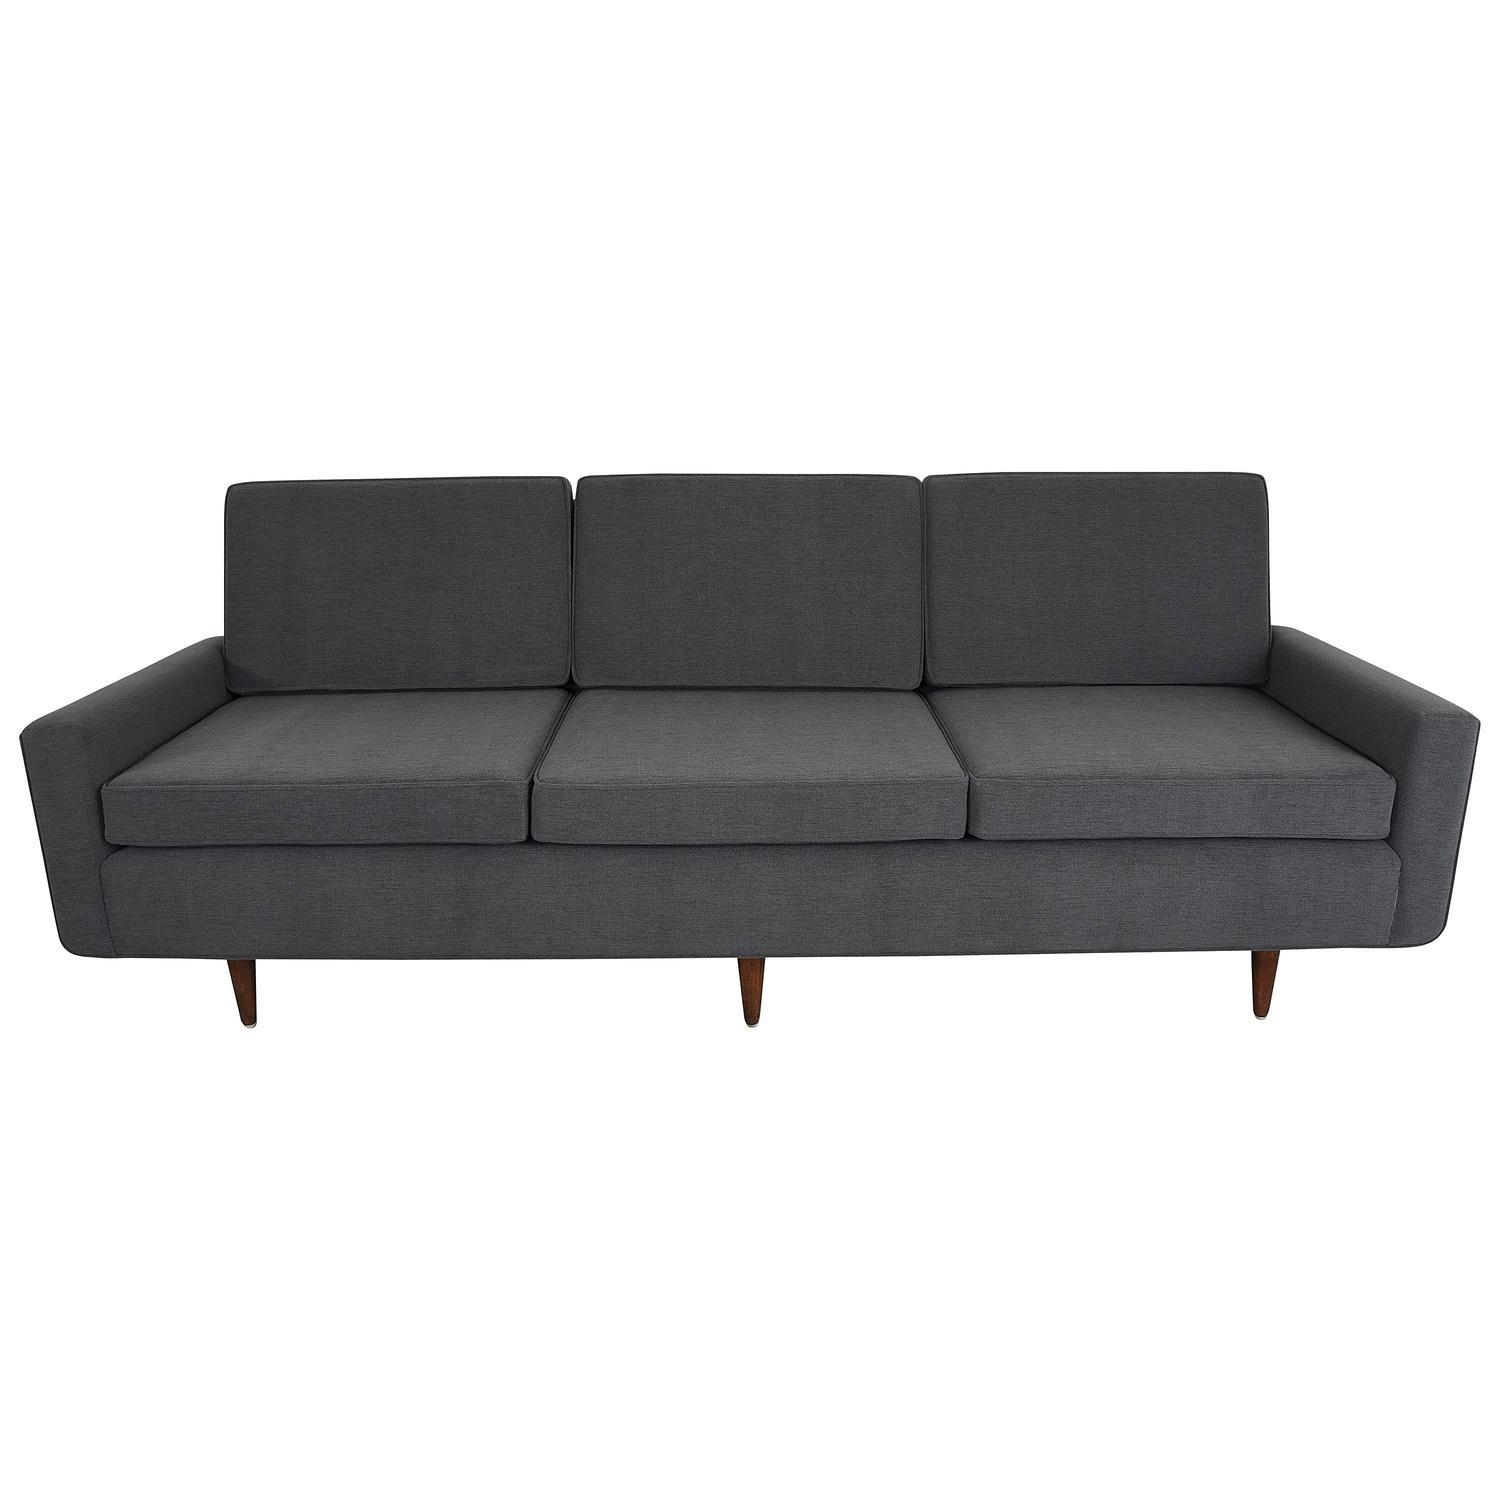 Florence Knoll Sofa Three Seat Sofa, Model 26, Pair Available For Pertaining To Florence Knoll 3 Seater Sofas (View 14 of 20)